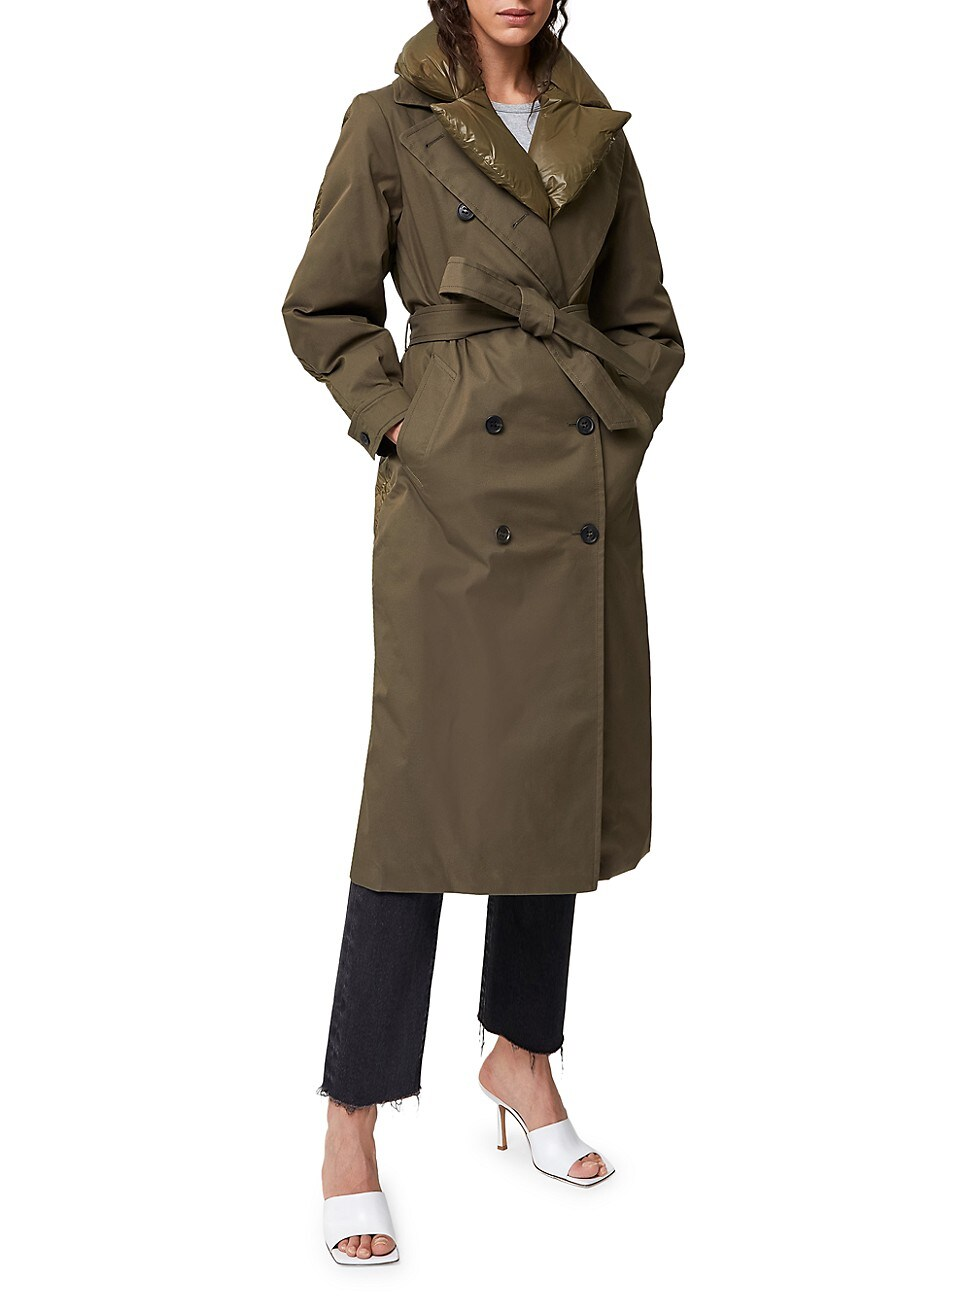 Mackage WOMEN'S SAGE DOUBLE-BREASTED DOWN TRENCH COAT